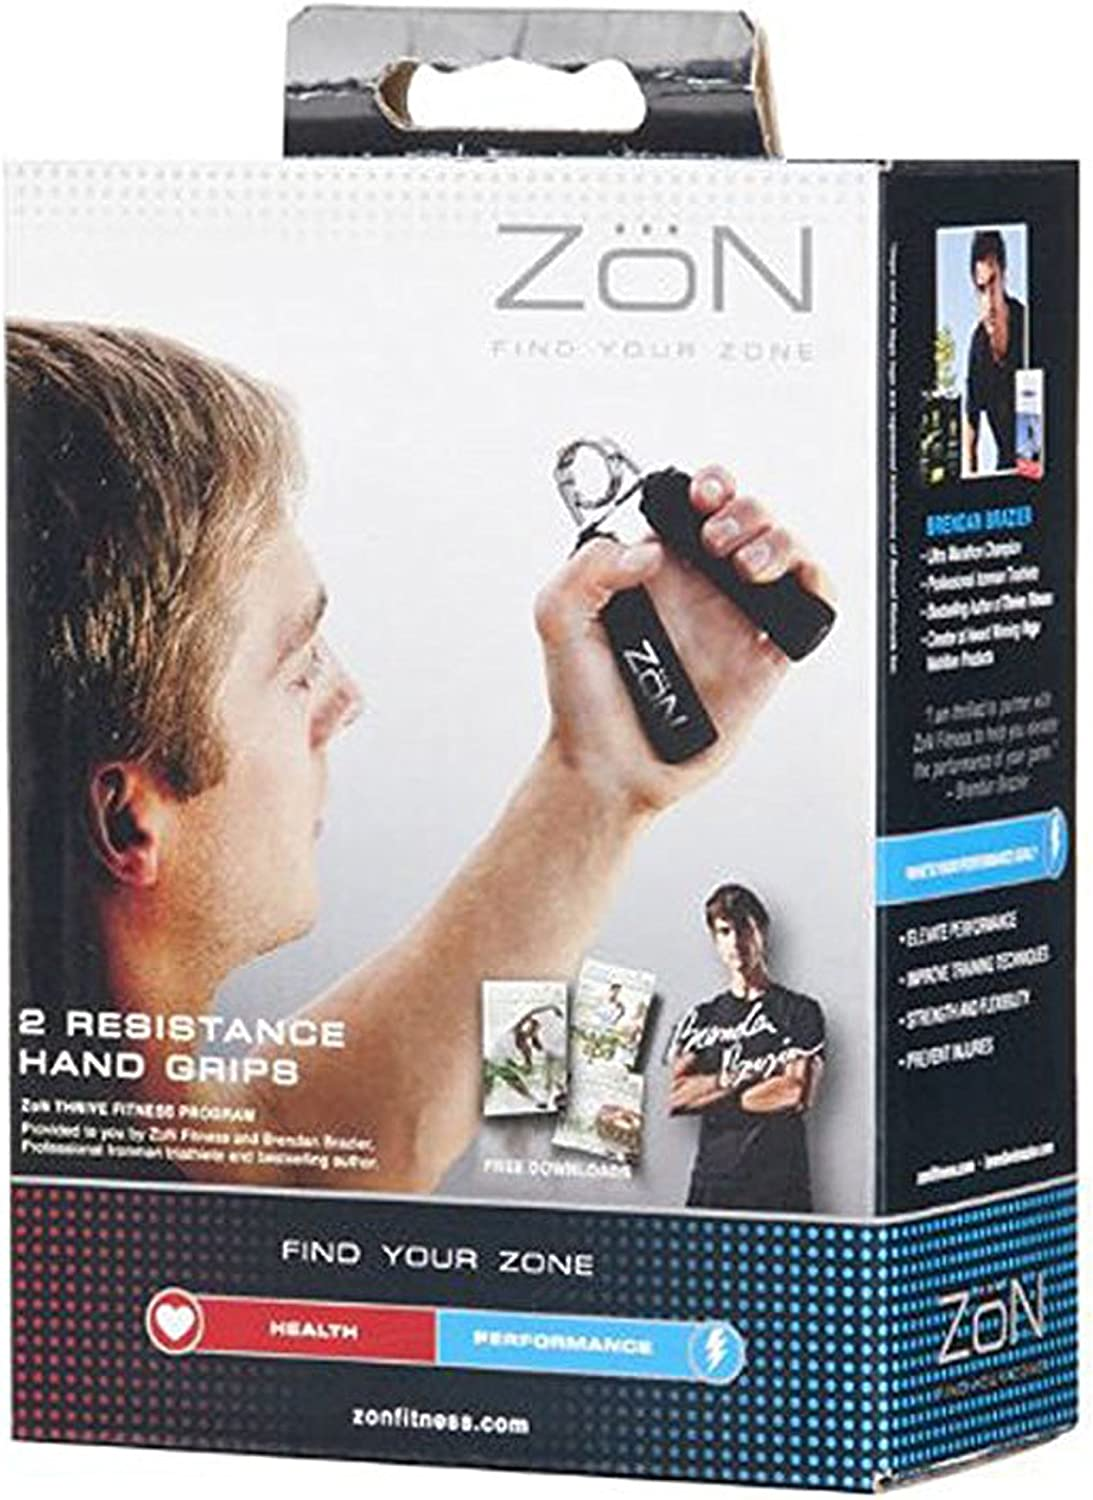 ZoN Resistance Strength Hand Grips  2 Pack